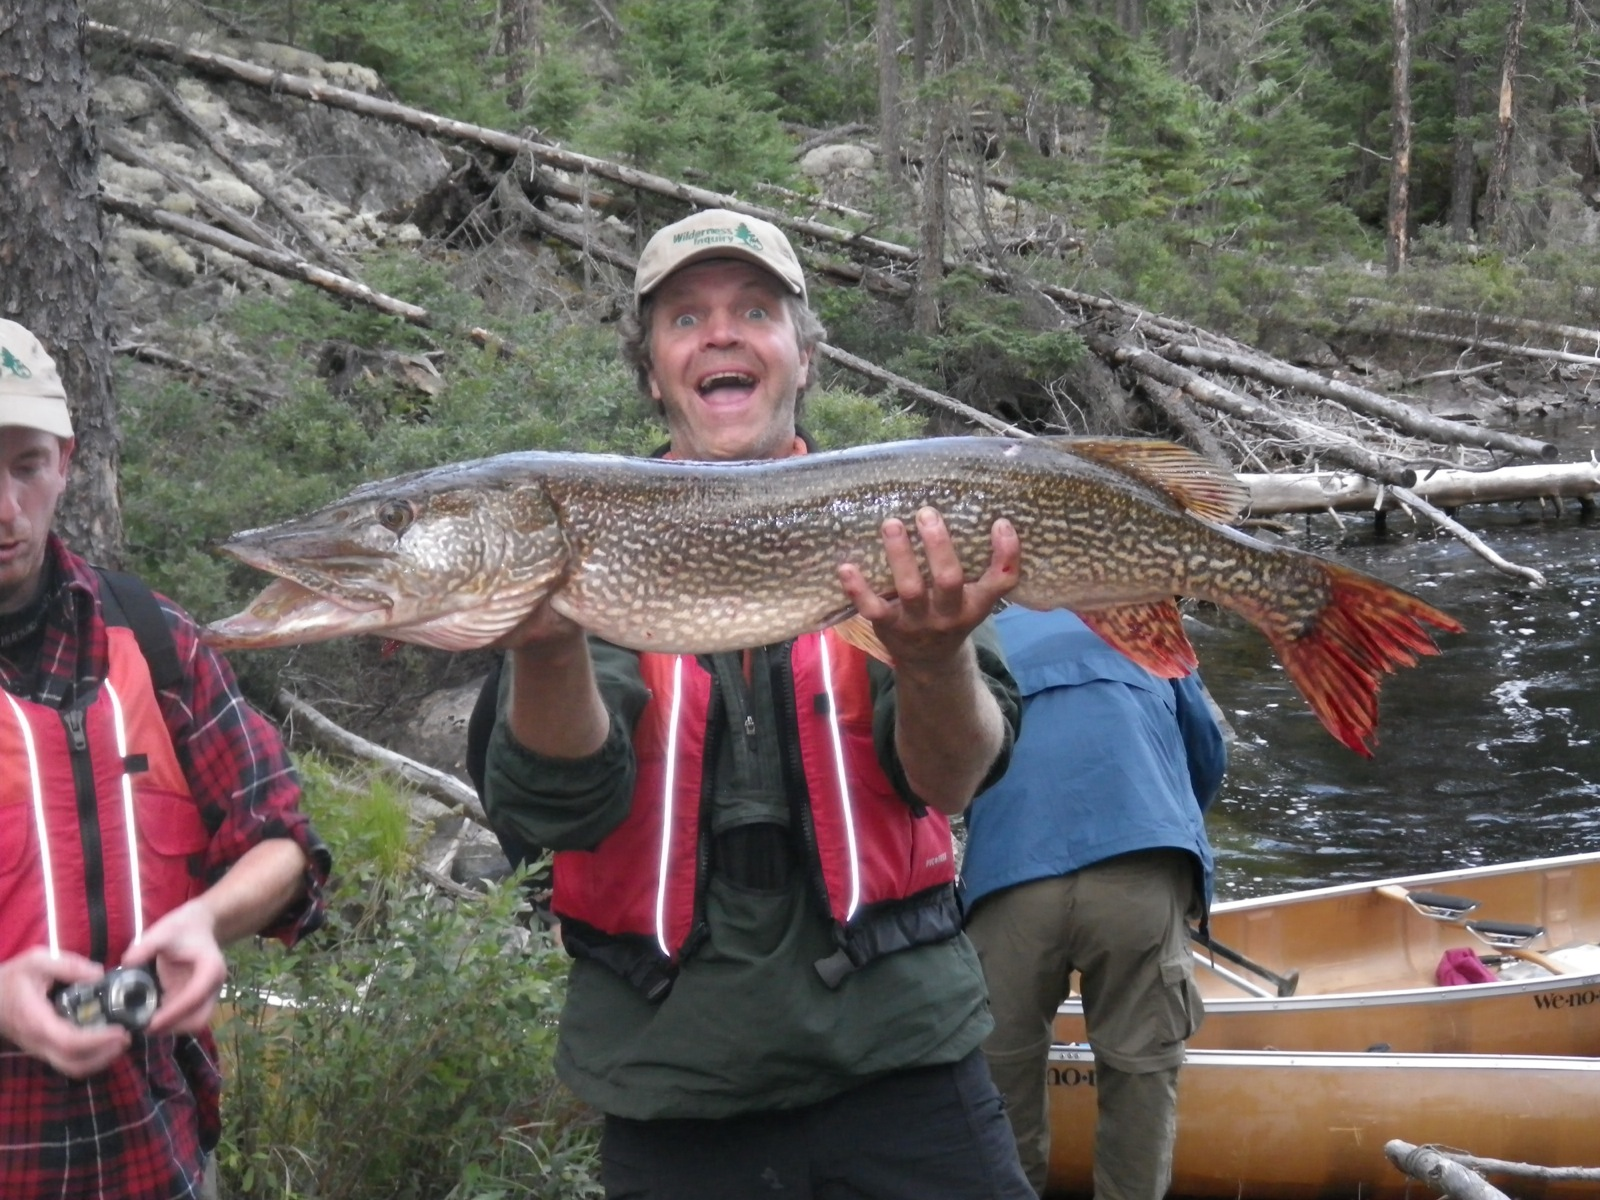 Paul poses with a large northern pike caught in the Wabakimi Provincial Park of Ontario.